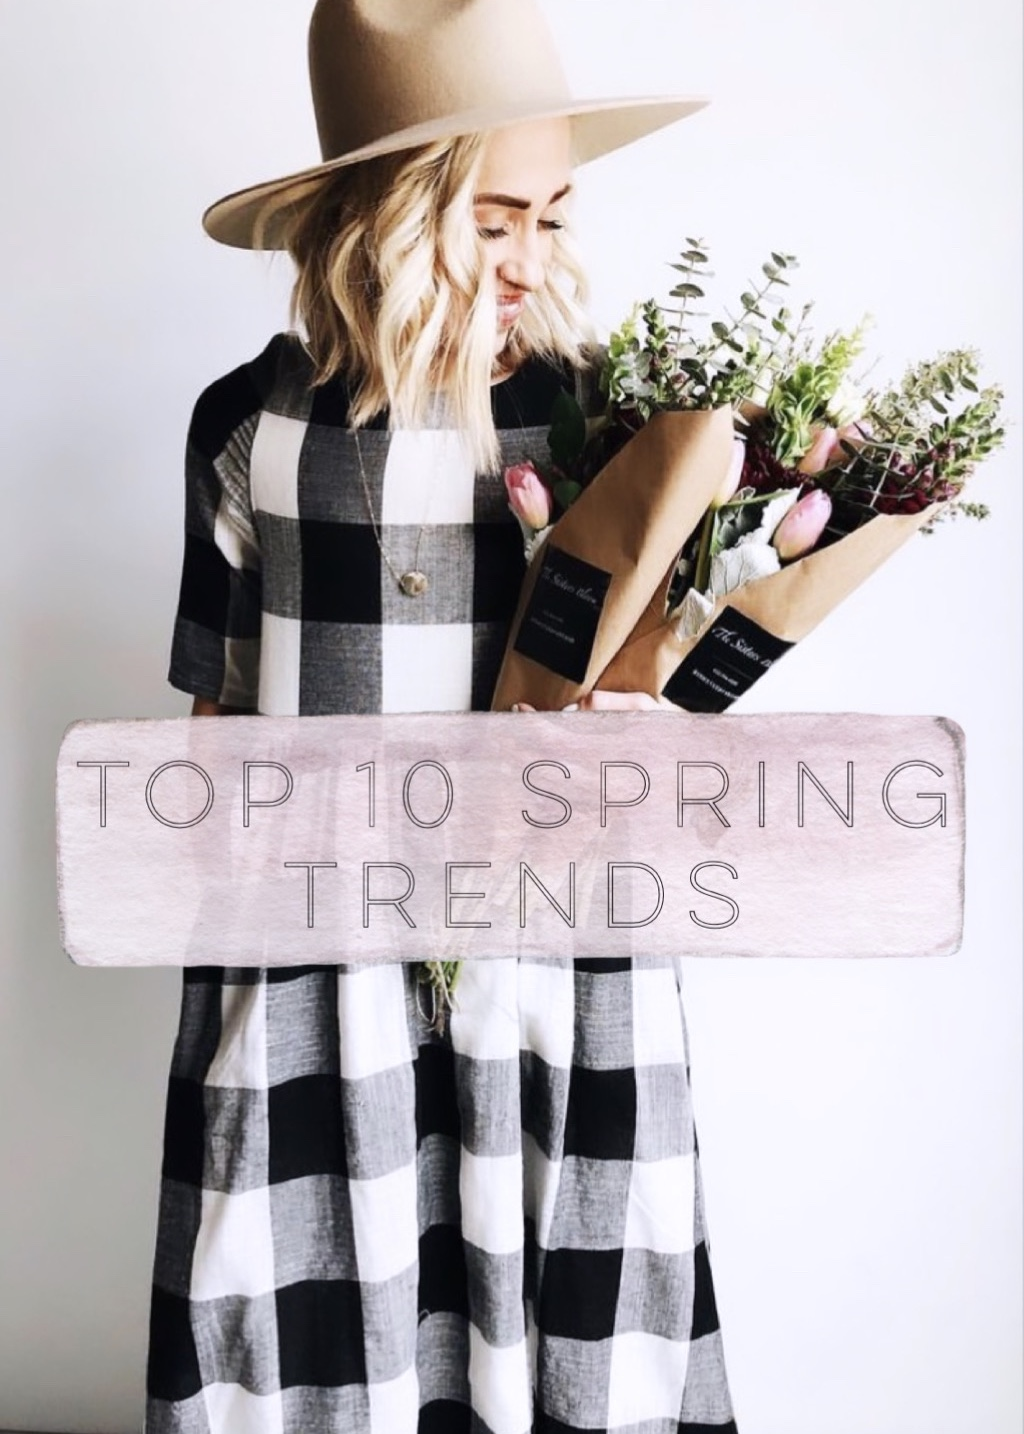 Original photo and dreamy buffalo plaid dress are from  Roolee